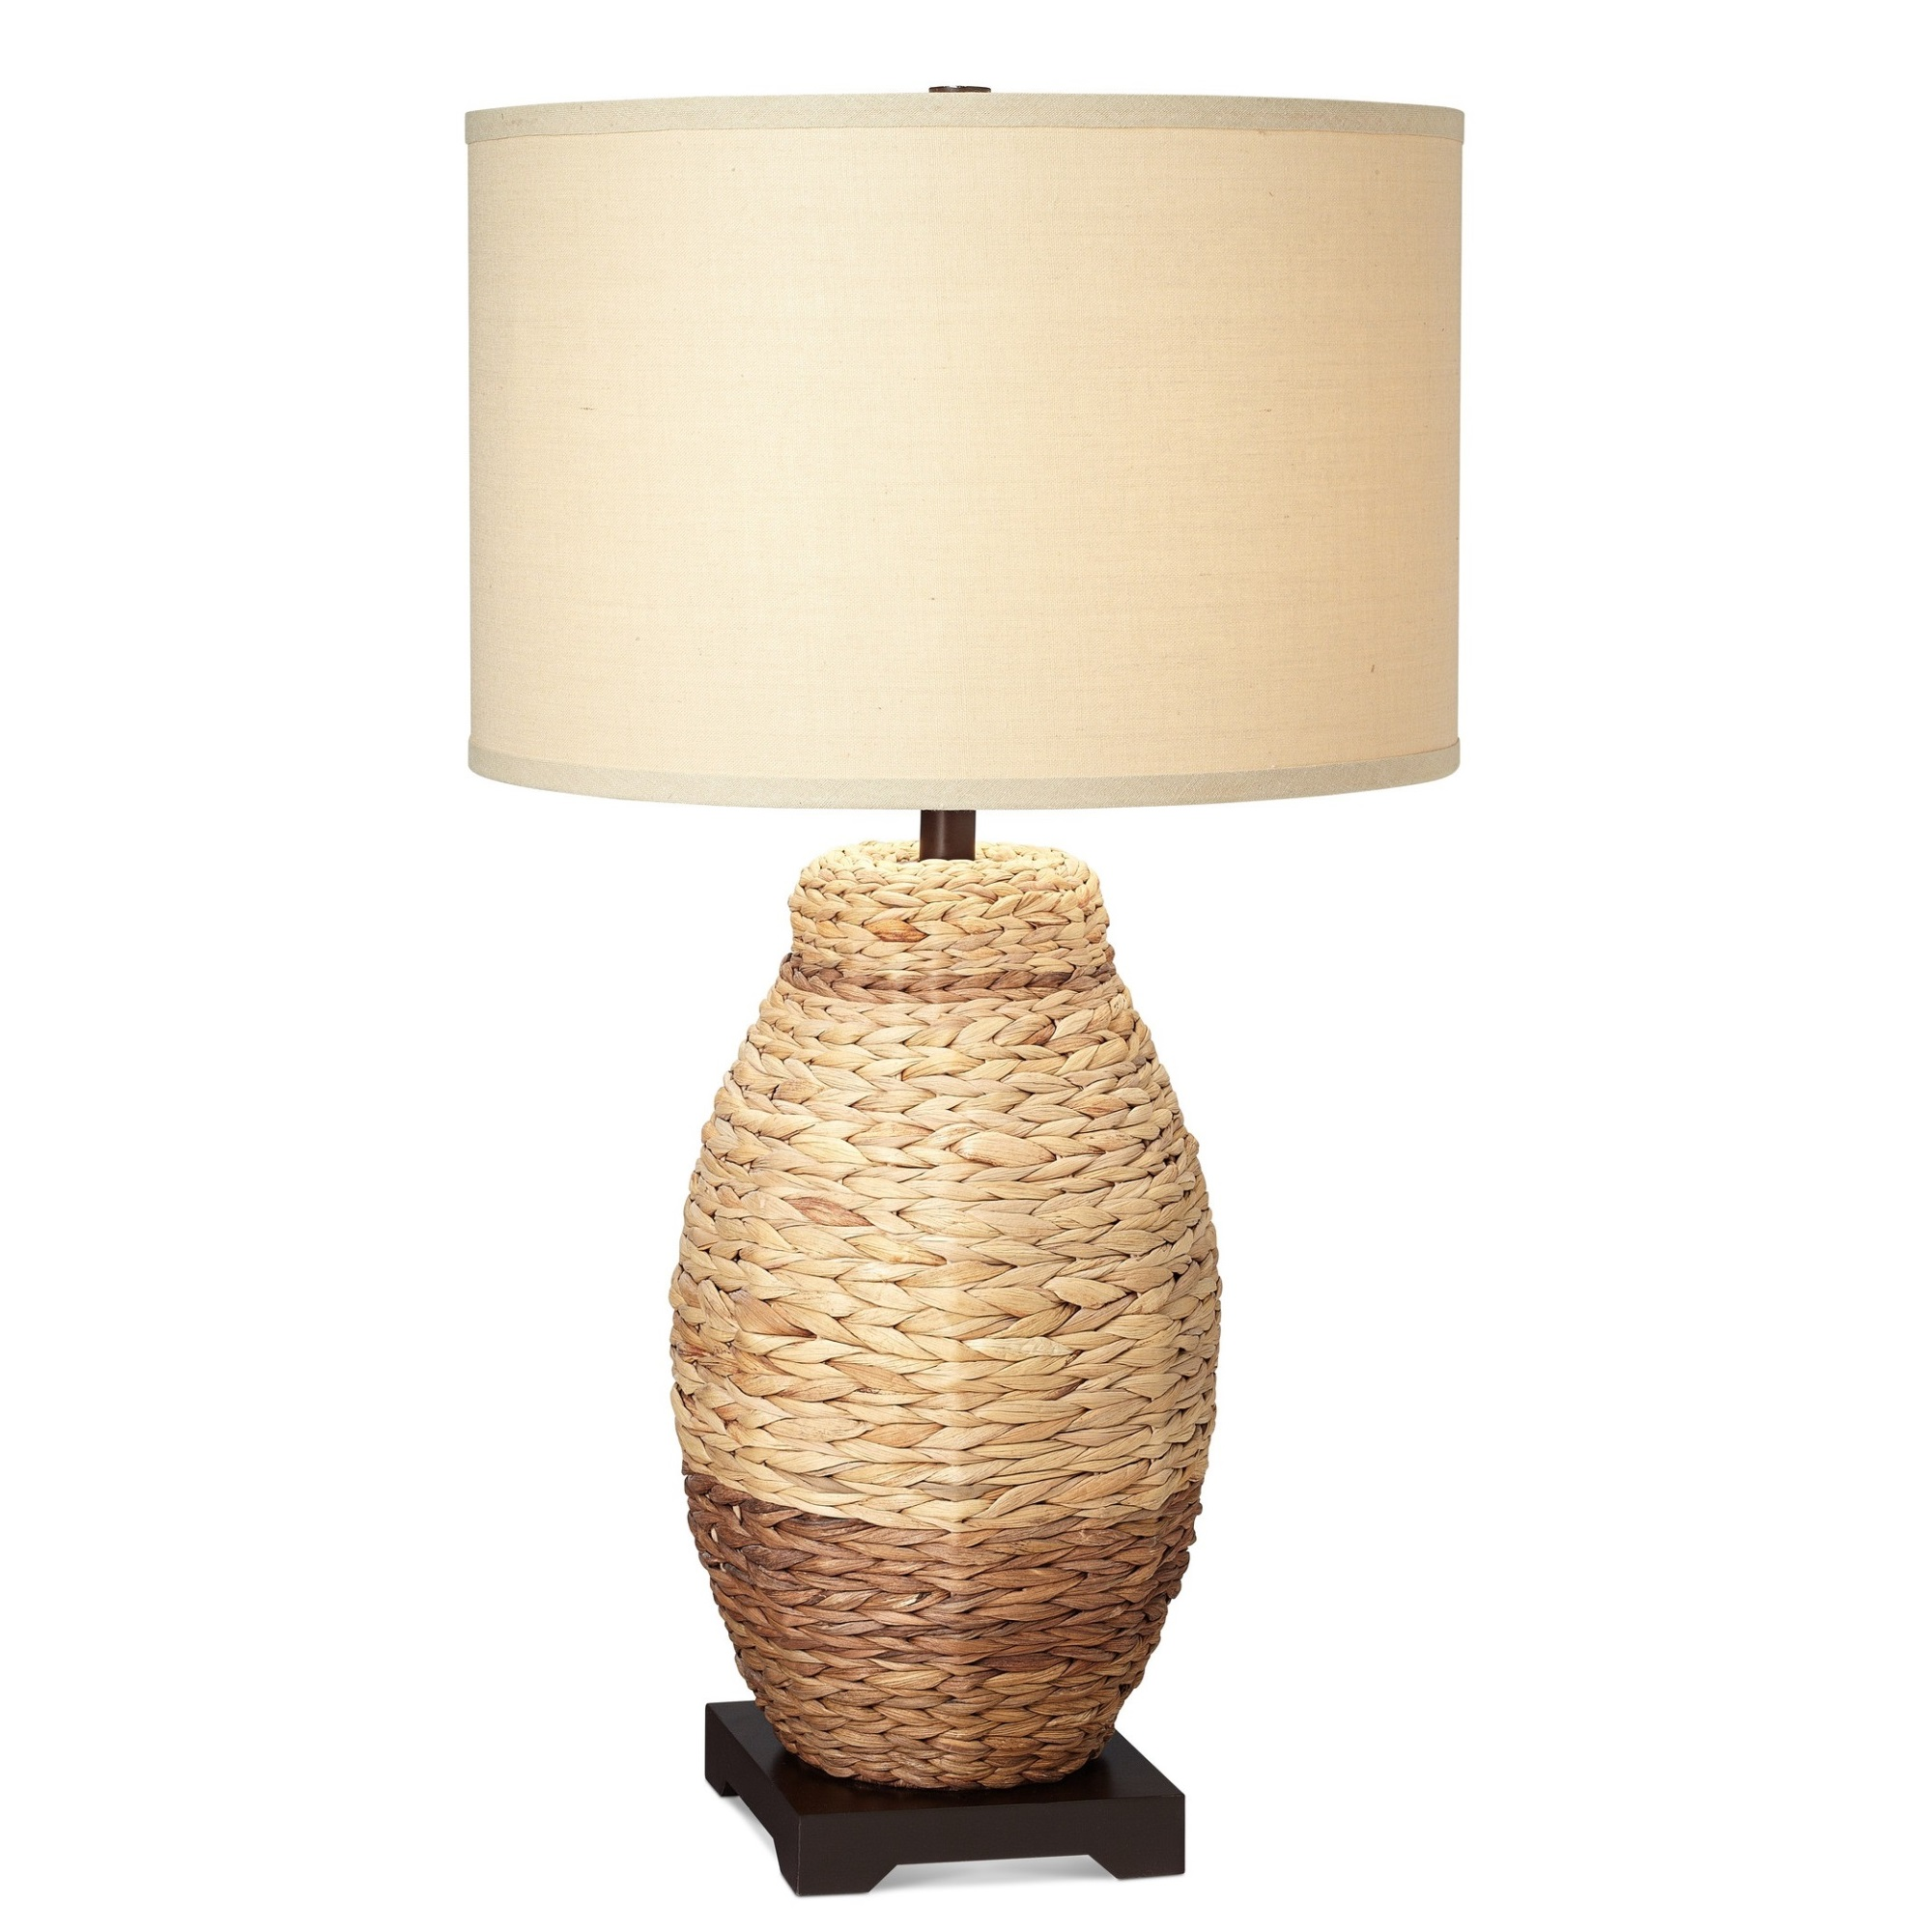 table lighting light room coast images cream best master grey awesome dining lamps matching lamp pacific in living on sully of